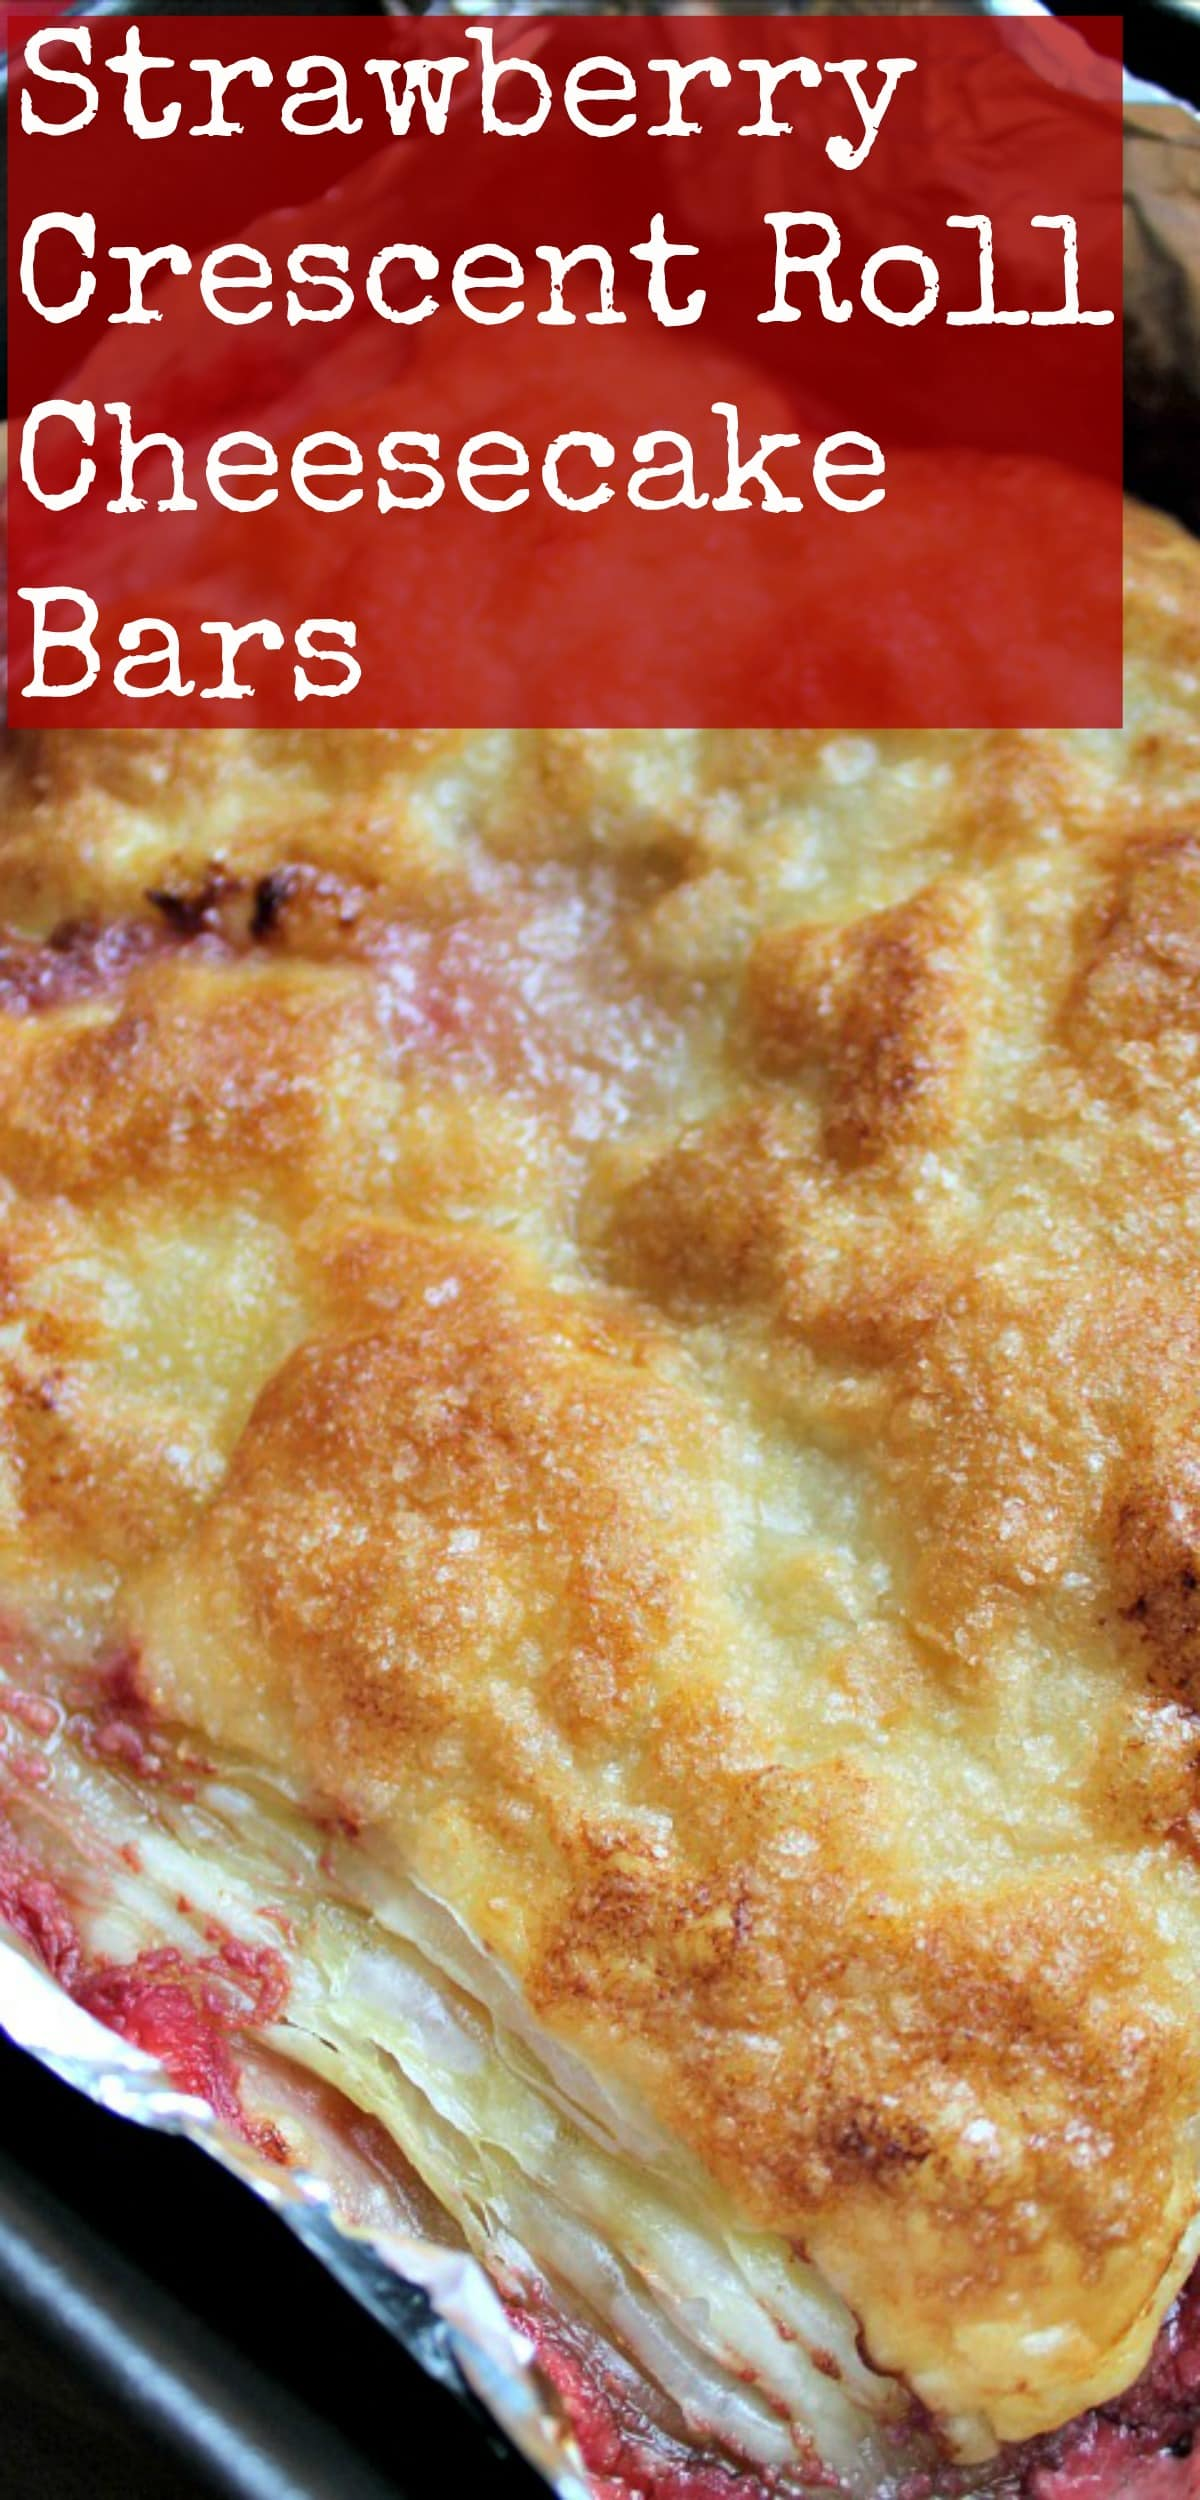 Strawberry Crescent Roll Cheesecake Bars An incredibly easy and fuss free recipe with cream cheese and strawberry filling sandwiched between layers of pastry. This tastes amazing!